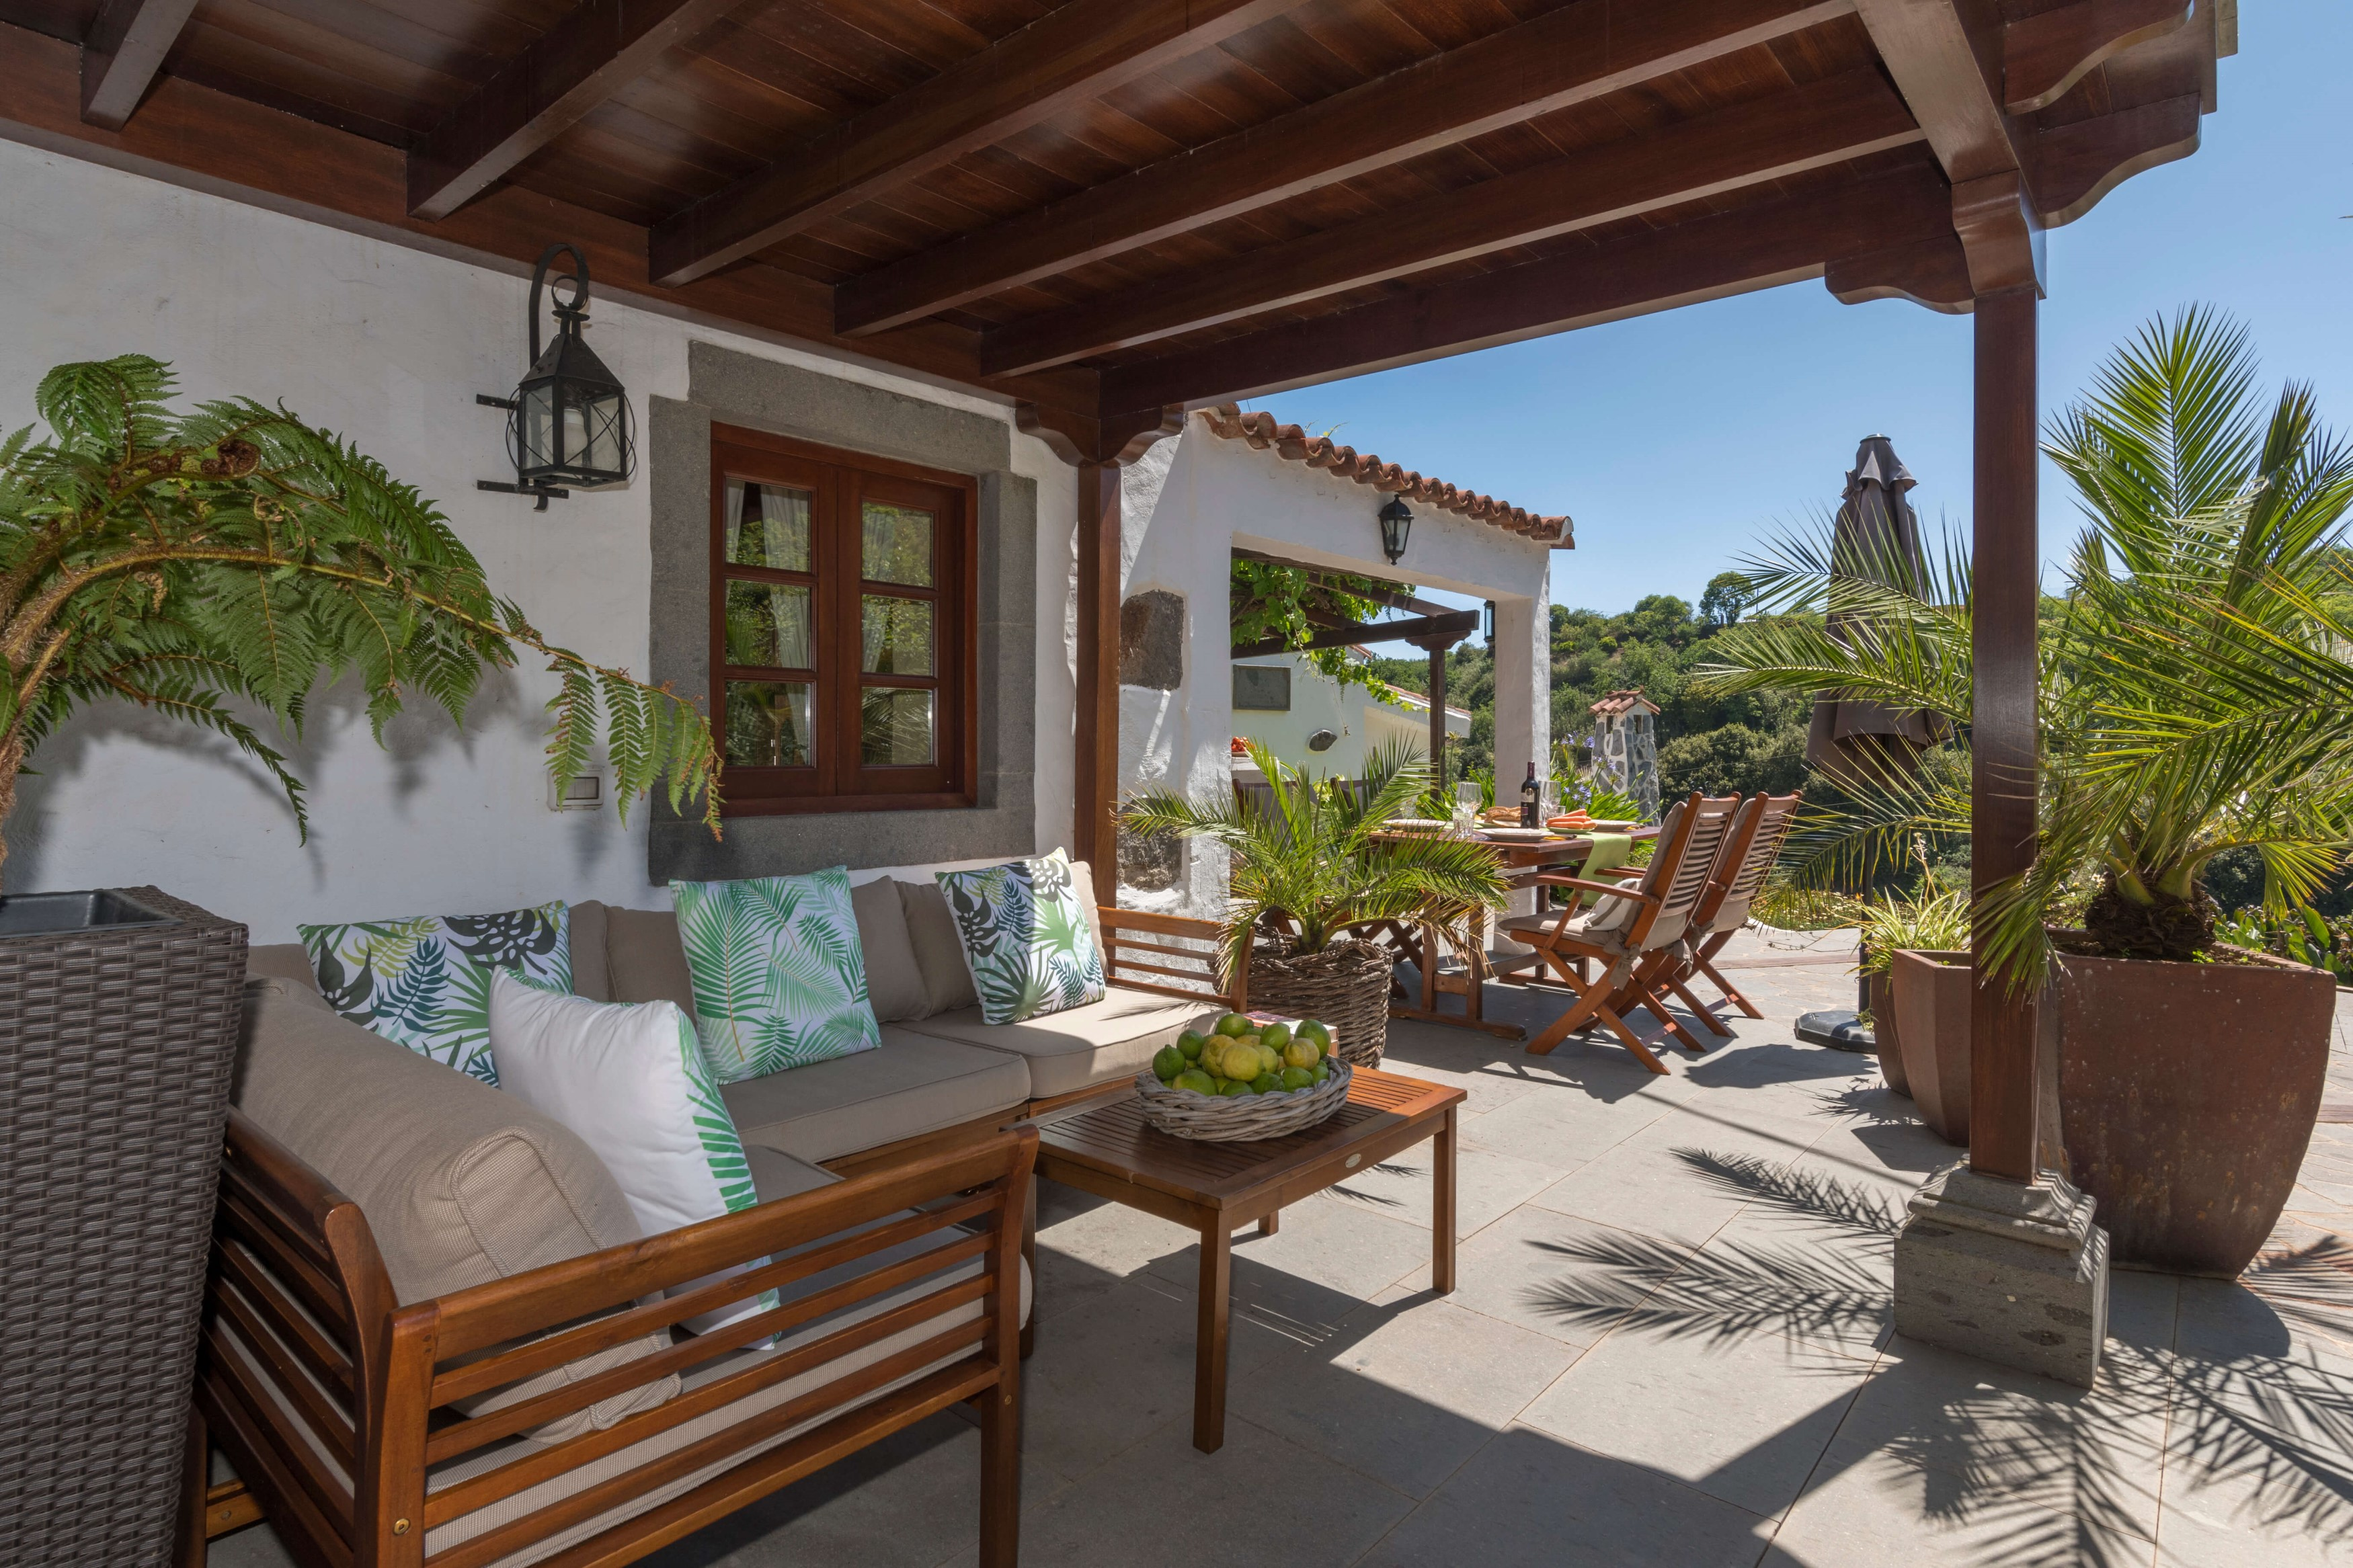 Maison de vacances House - 2 Bedrooms with Pool and WiFi - 106781 (2742990), San Fernando, Grande Canarie, Iles Canaries, Espagne, image 20